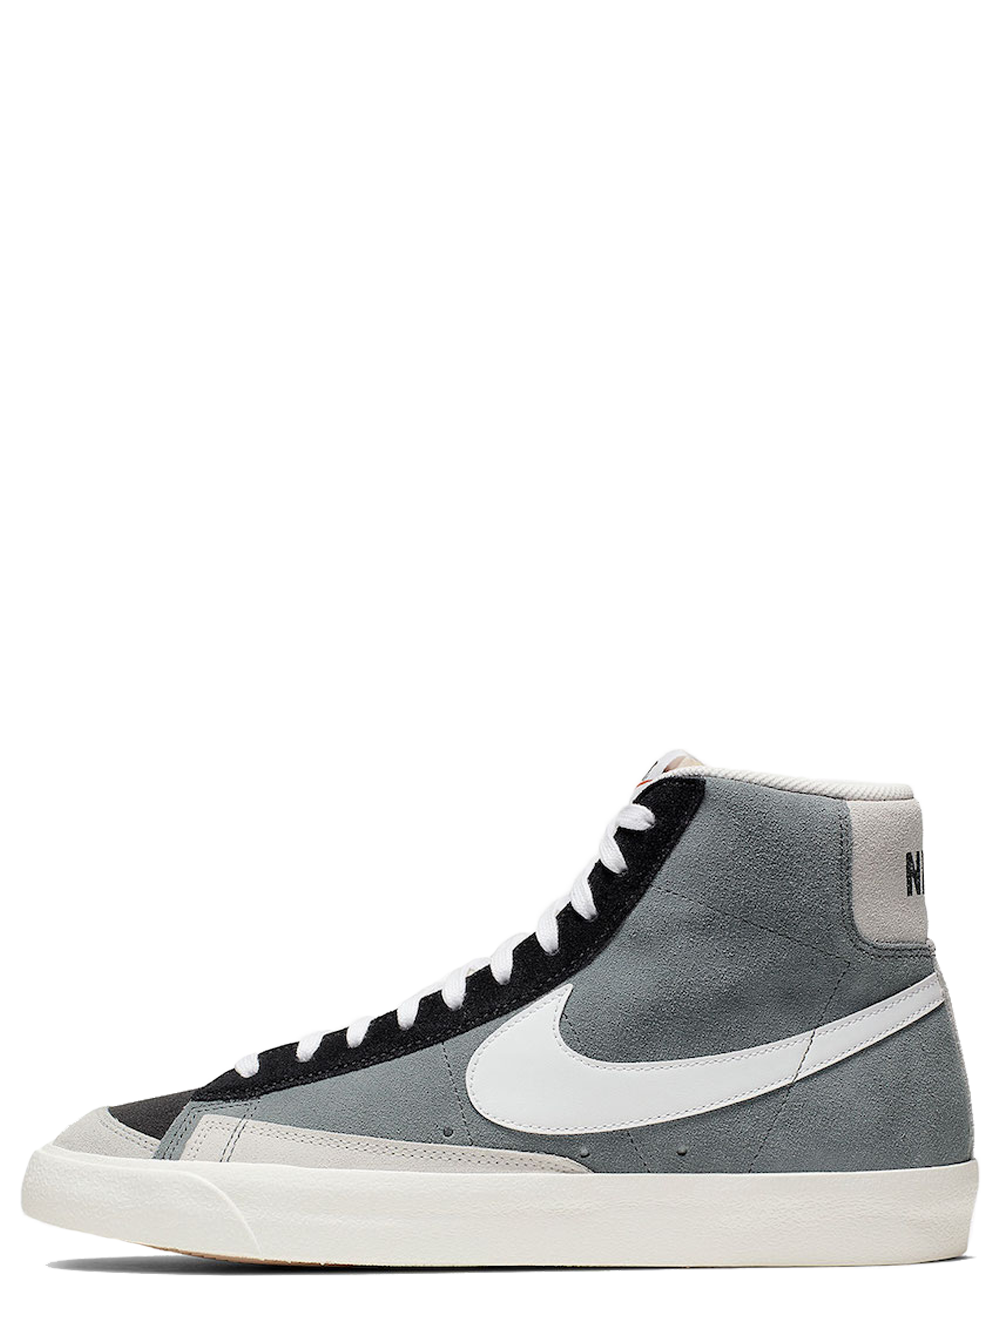 NIKE BLAZER MID 77 VNTG WE SUEDE COOL GREY/BLK-WHT